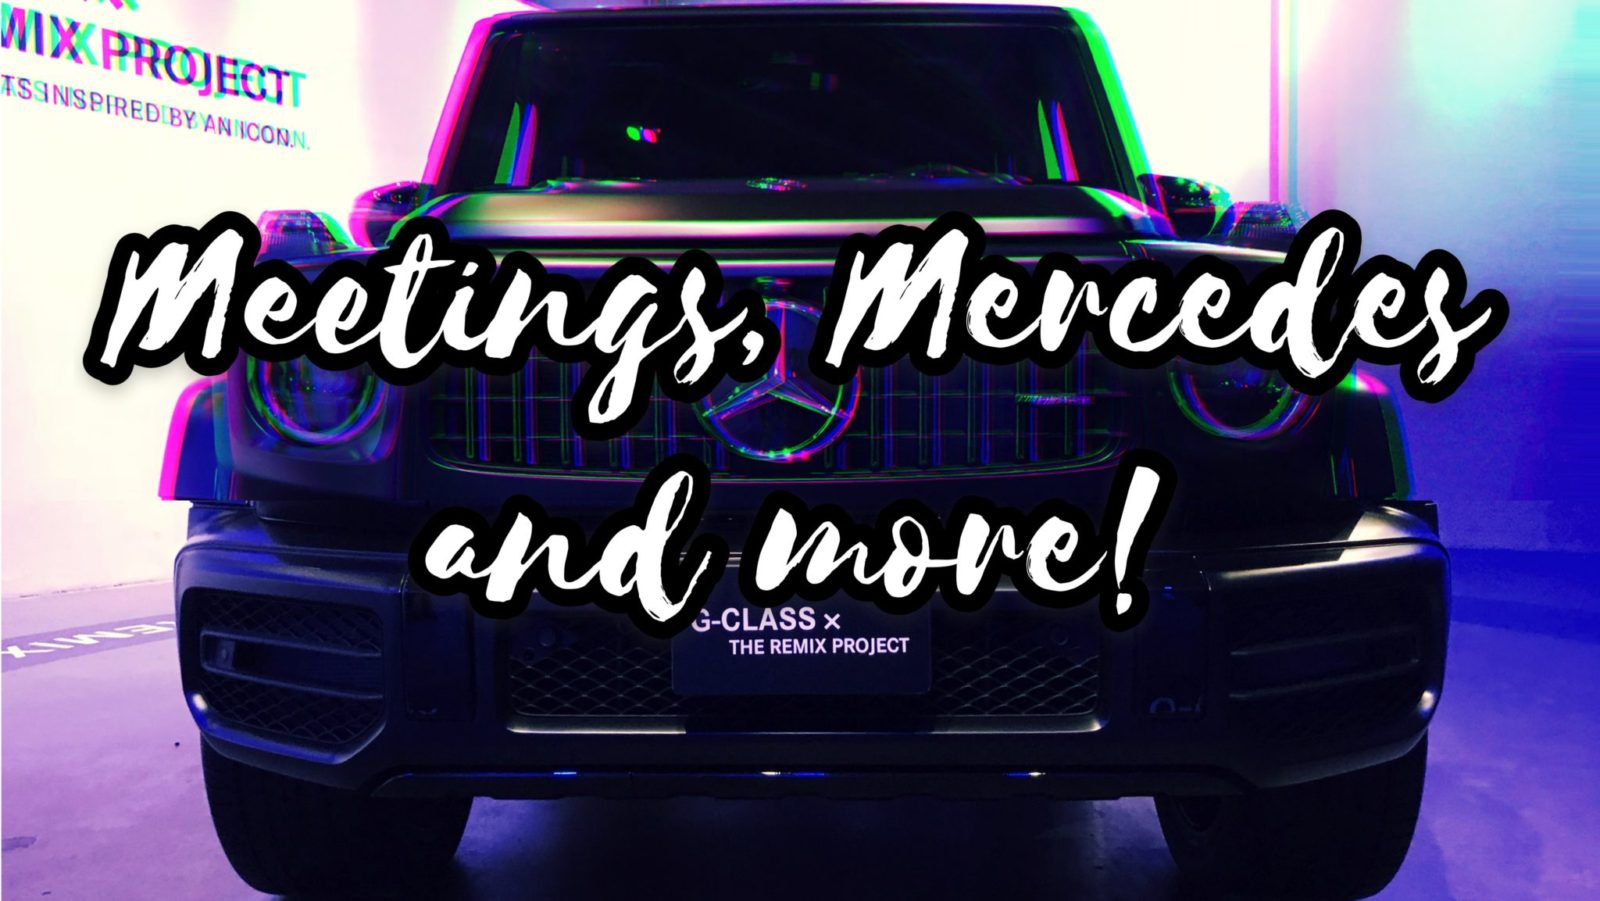 VLOG: Meetings, Mercedes and More!